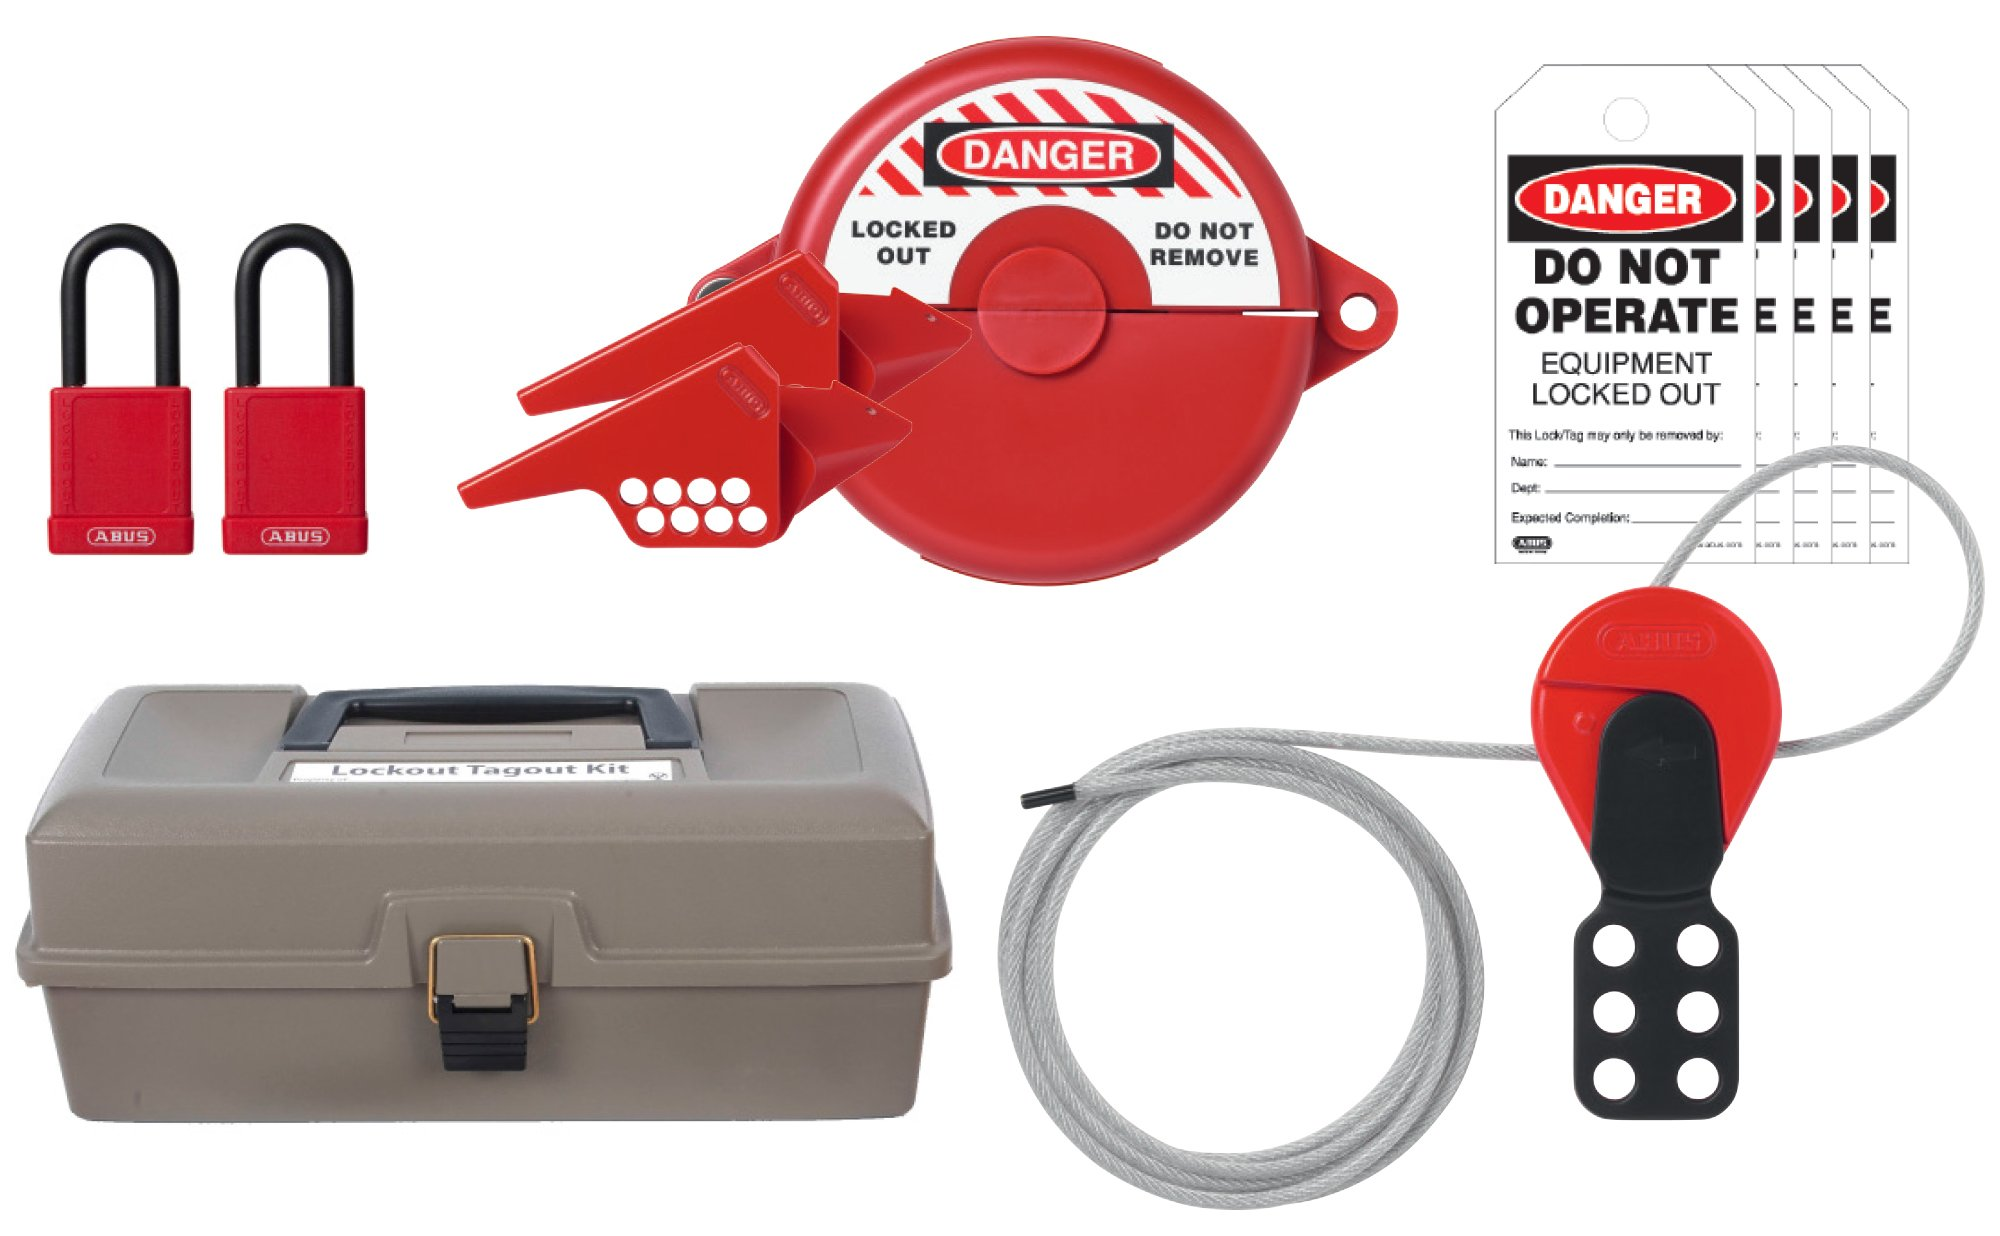 ABUS K940 Safety Lockout Tagout Valve Toolbox Kit by ABUS